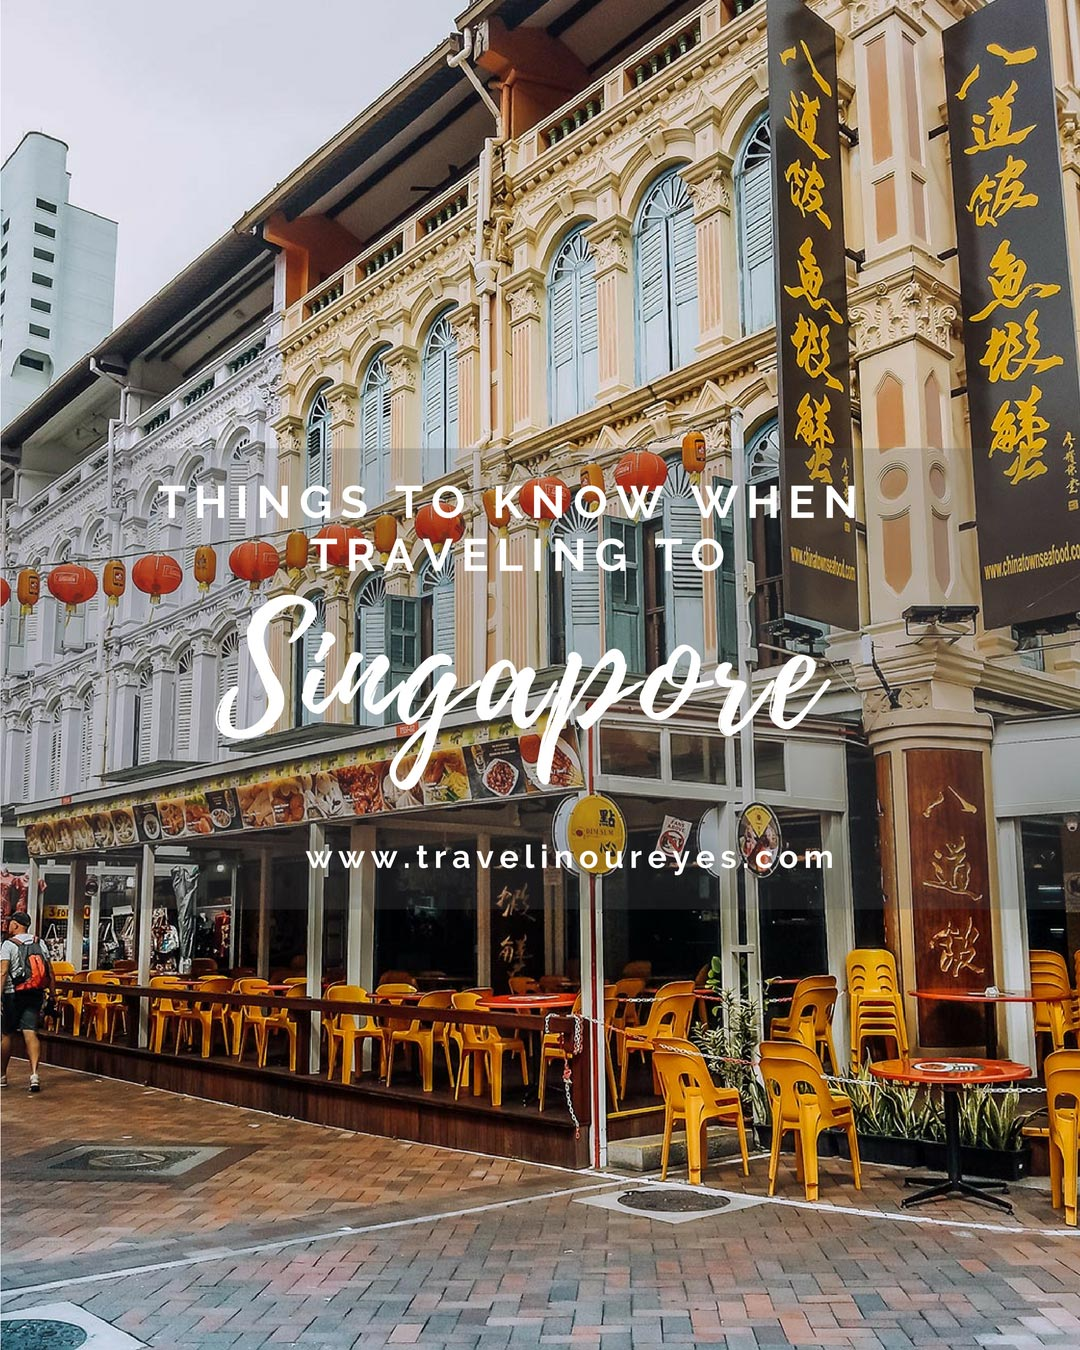 Things to know when traveling to Singapore